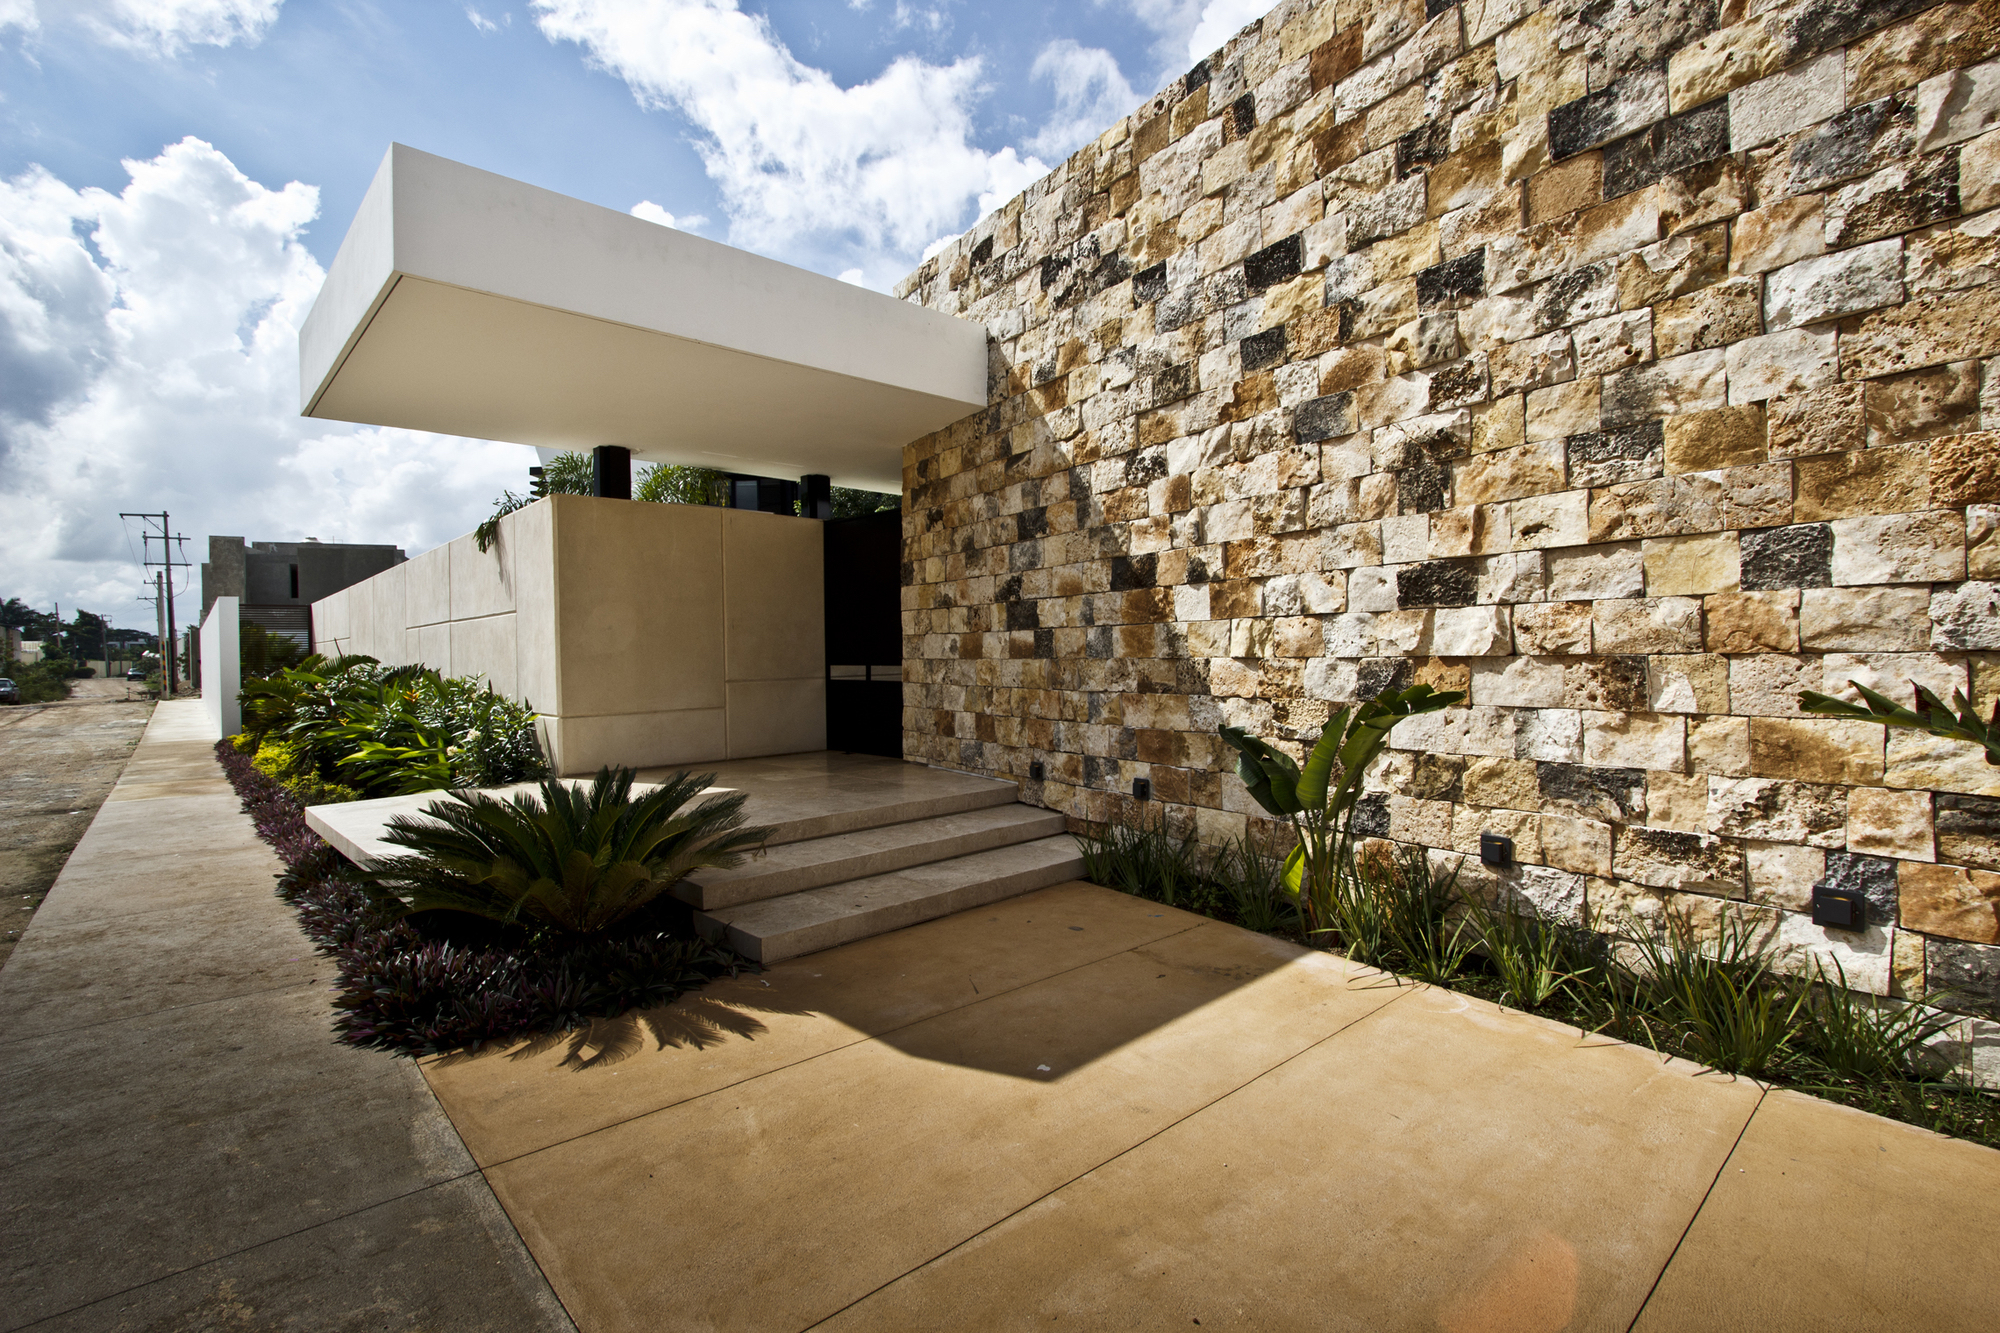 5305f3bee8e44e2ac3000006_temozon-house-carrillo-arquitectos-y-asociados_temozon_foto_03